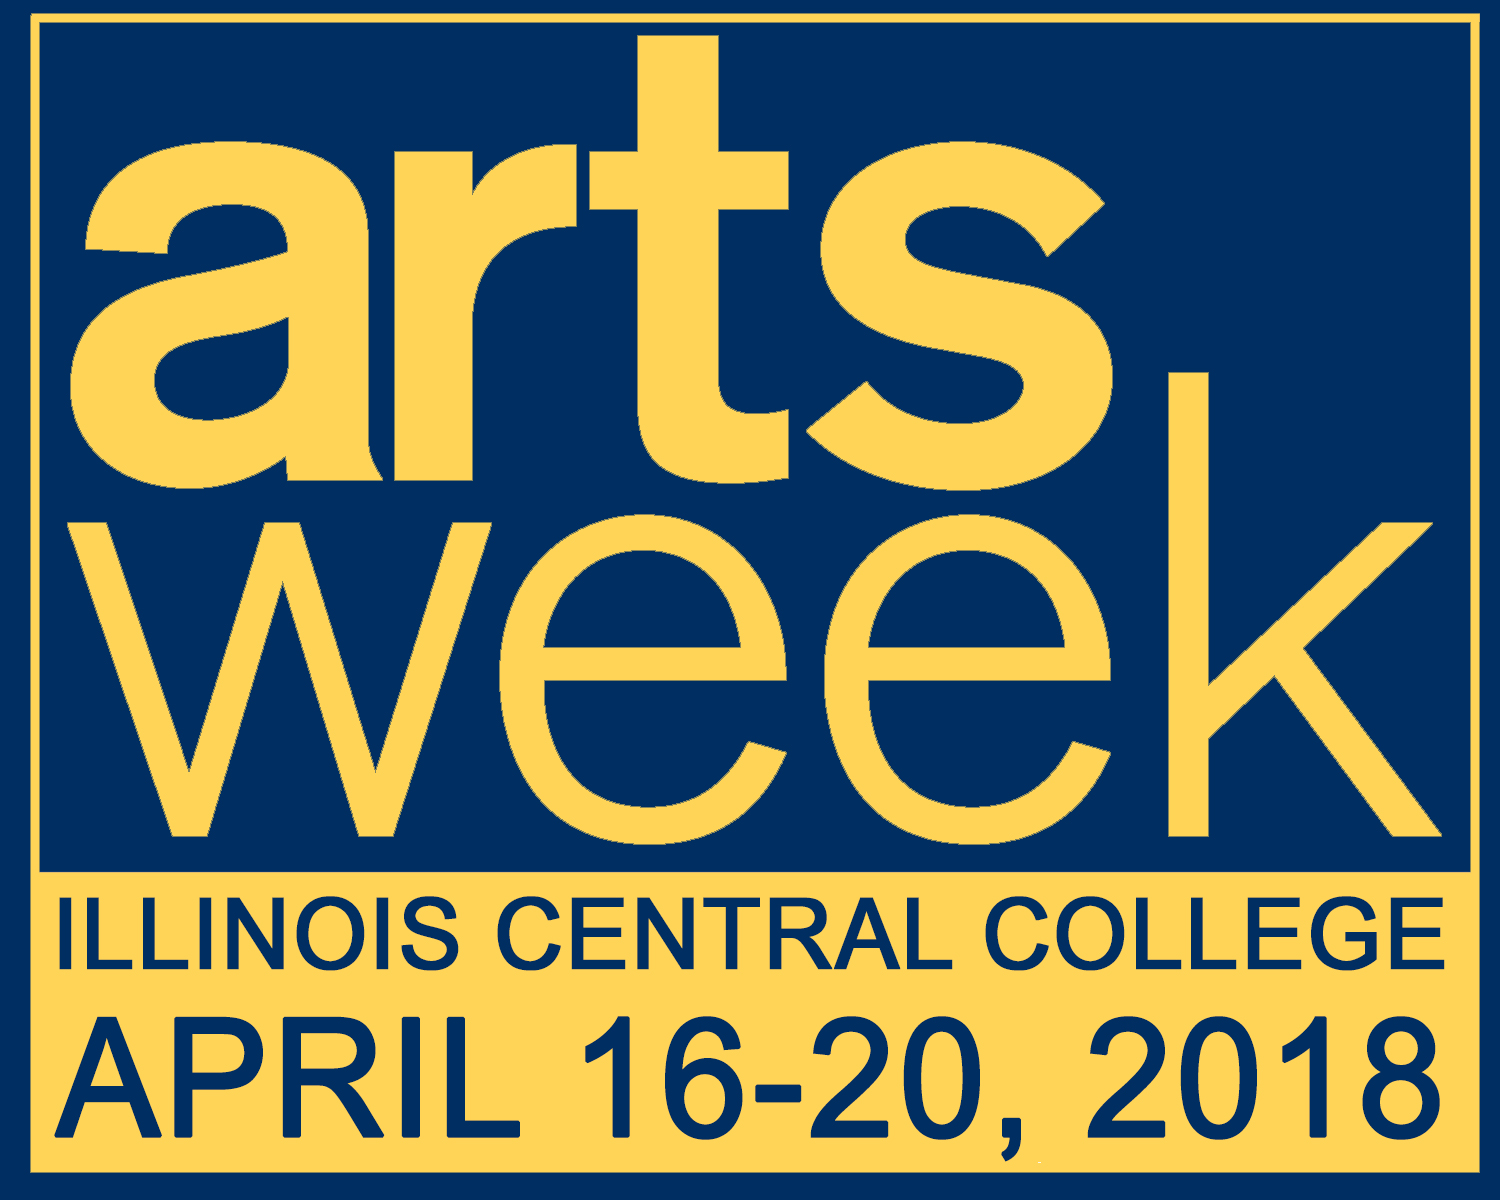 ICC Arts Week 2018 -- April 16-20, 2018